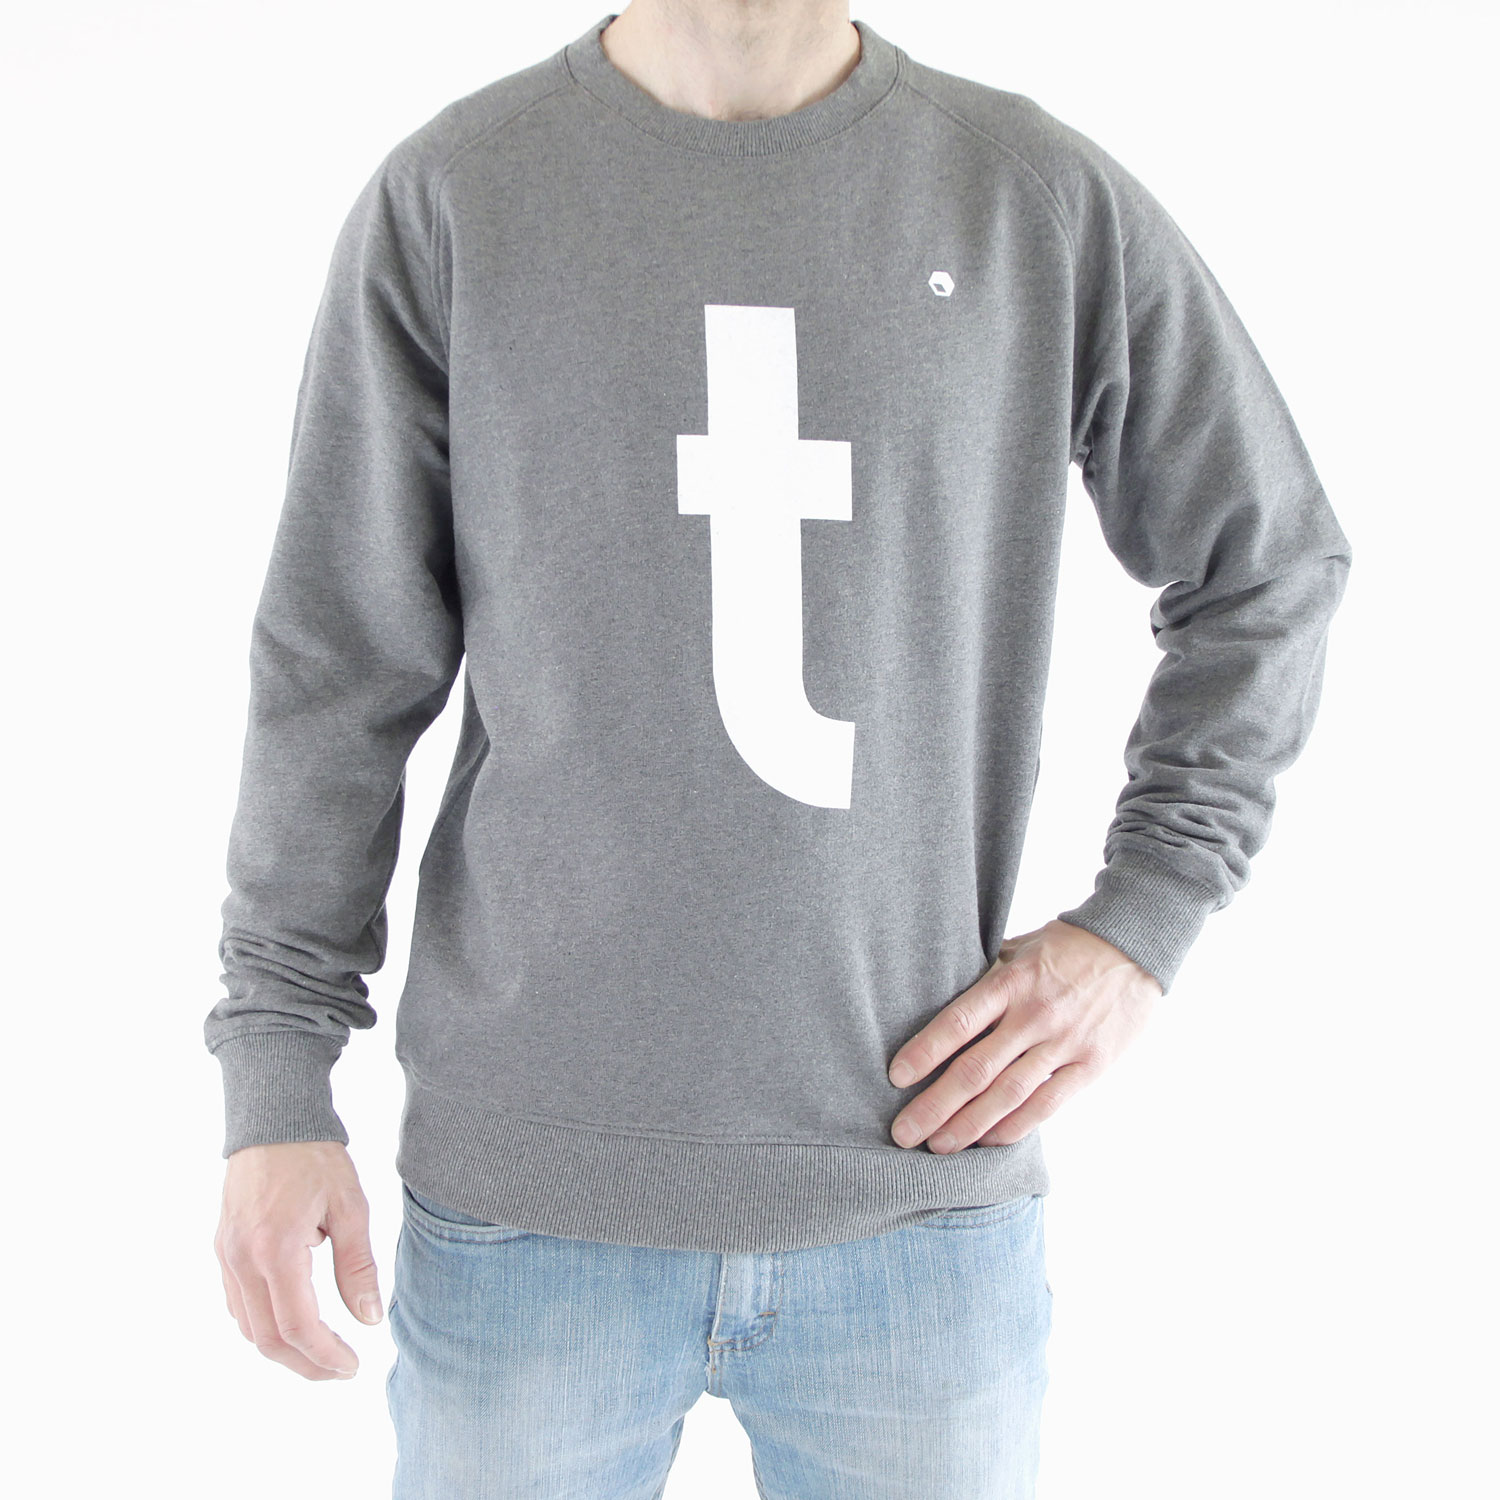 Flathold-apparel-sweat-t-grey